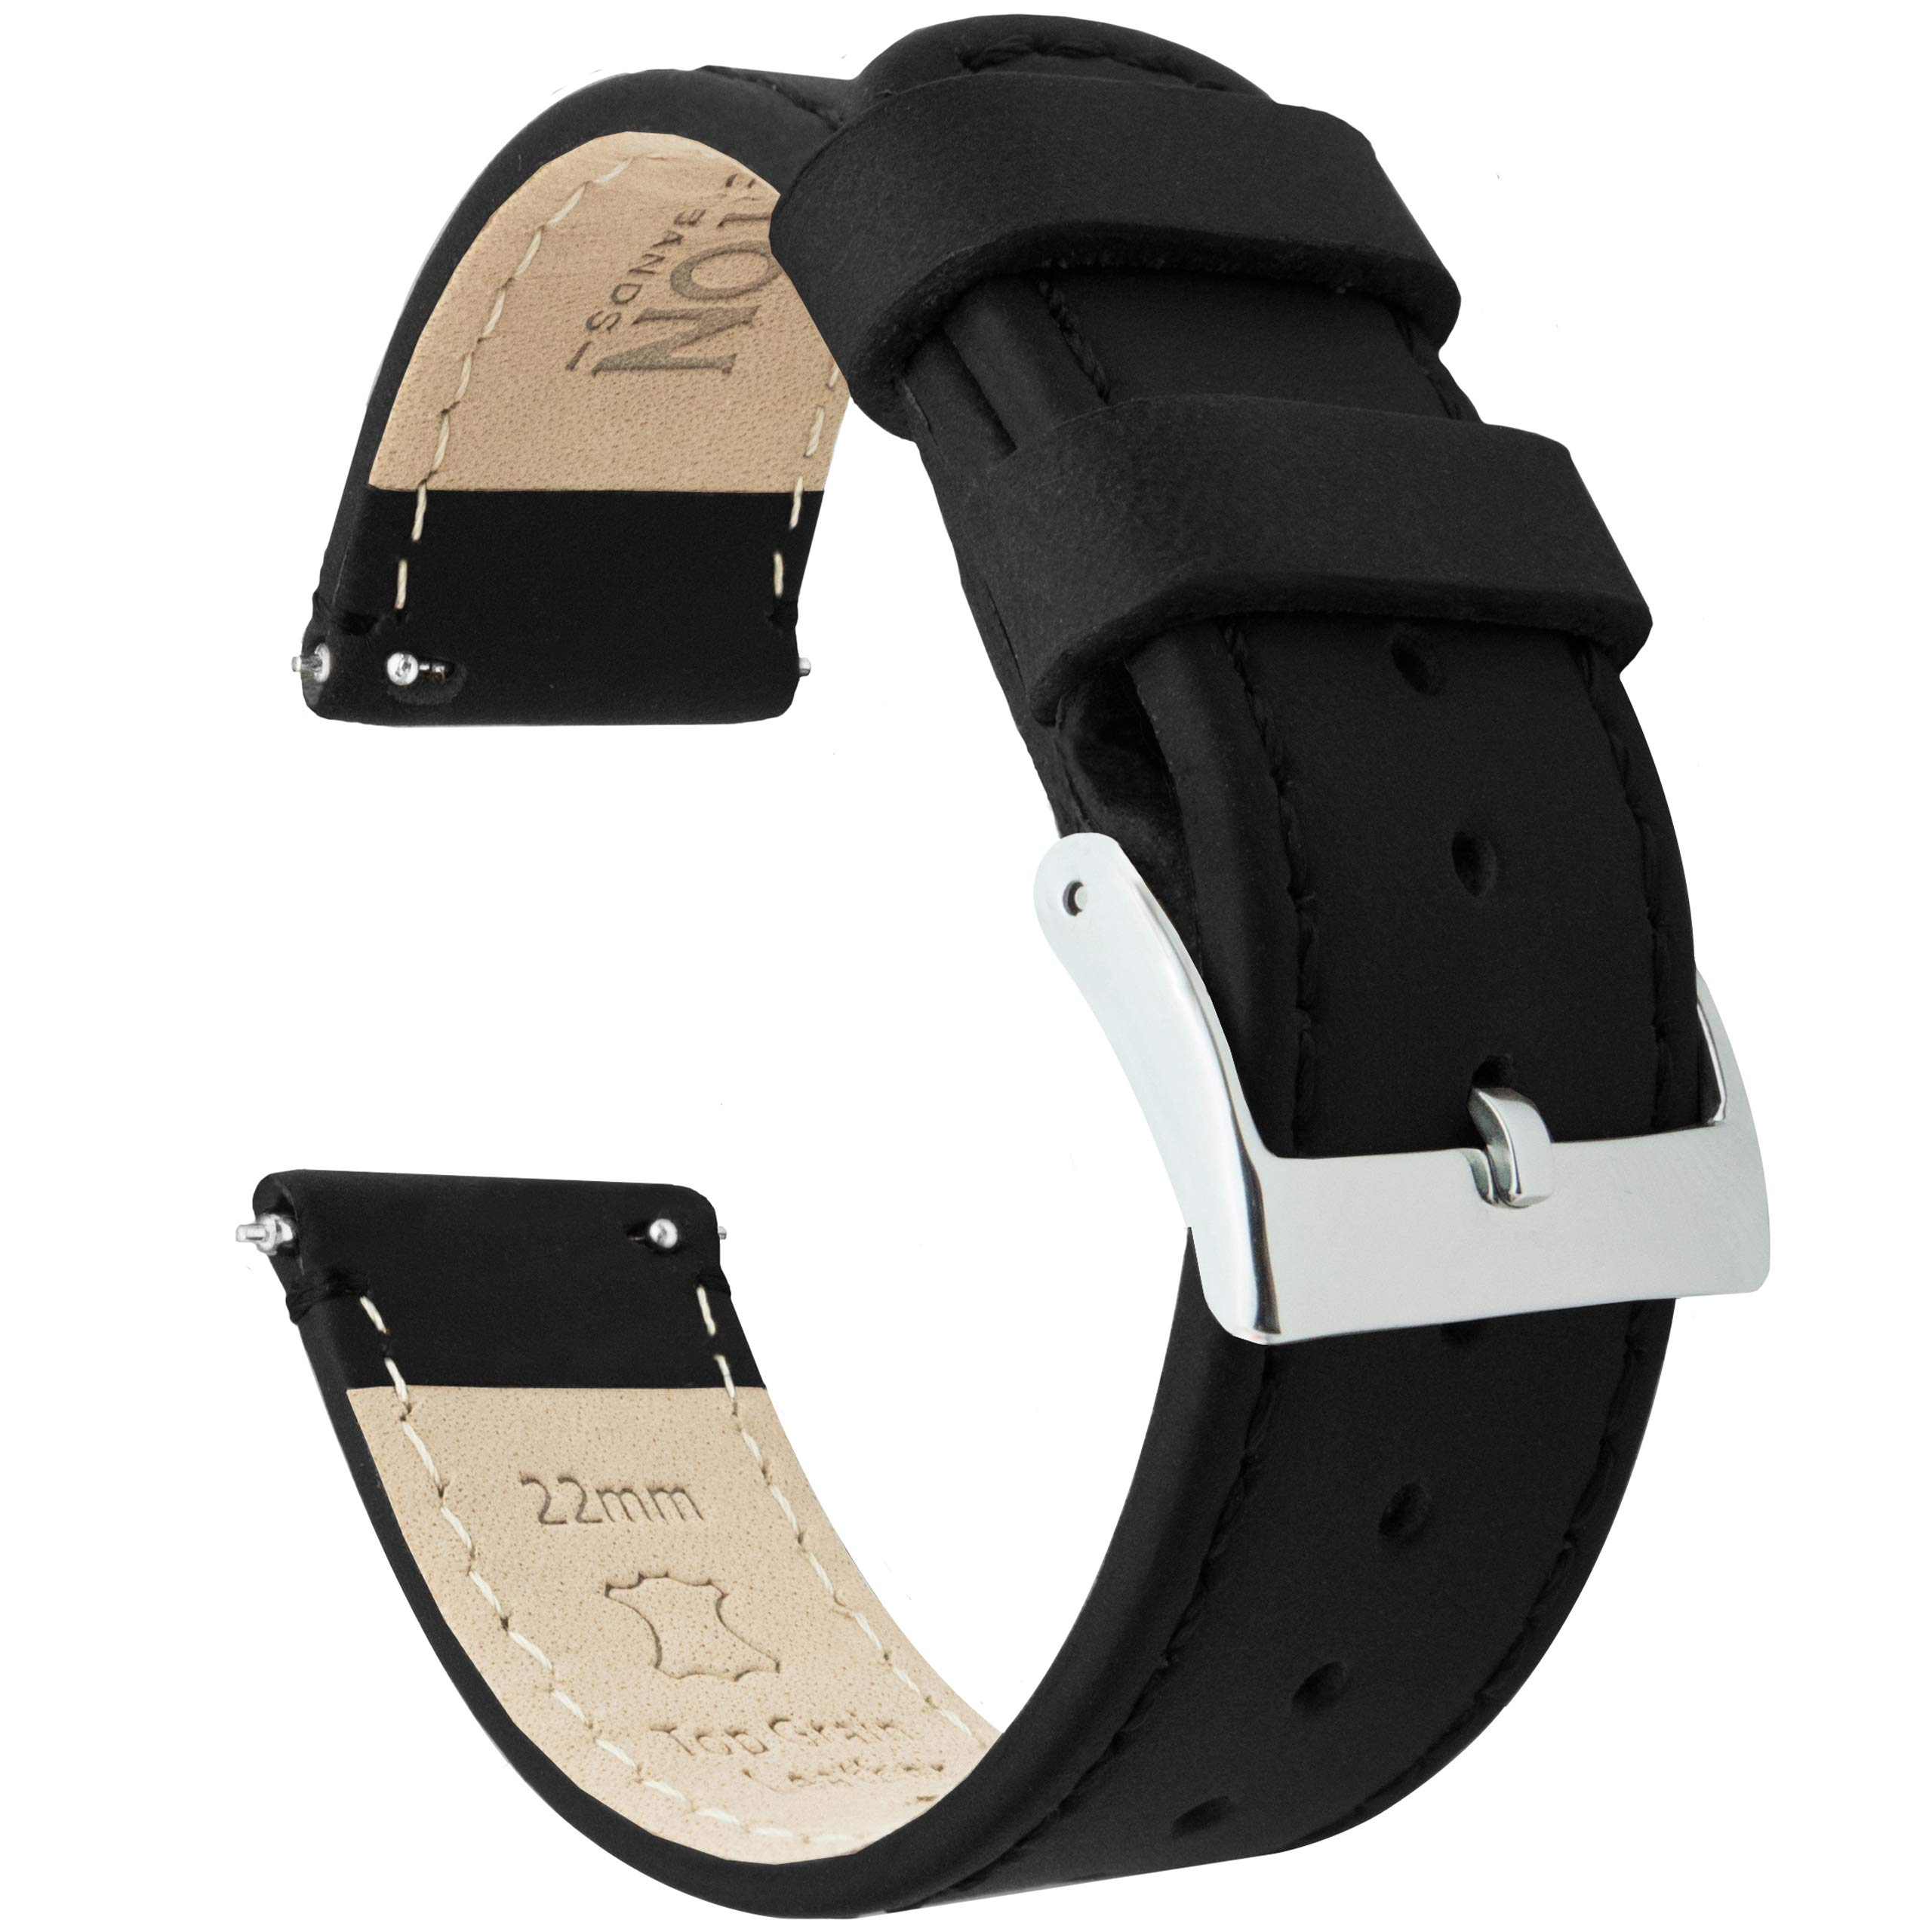 22mm Black - Standard Length - Barton Quick Release - Top Grain Leather Watch Band Strap by Barton Watch Bands